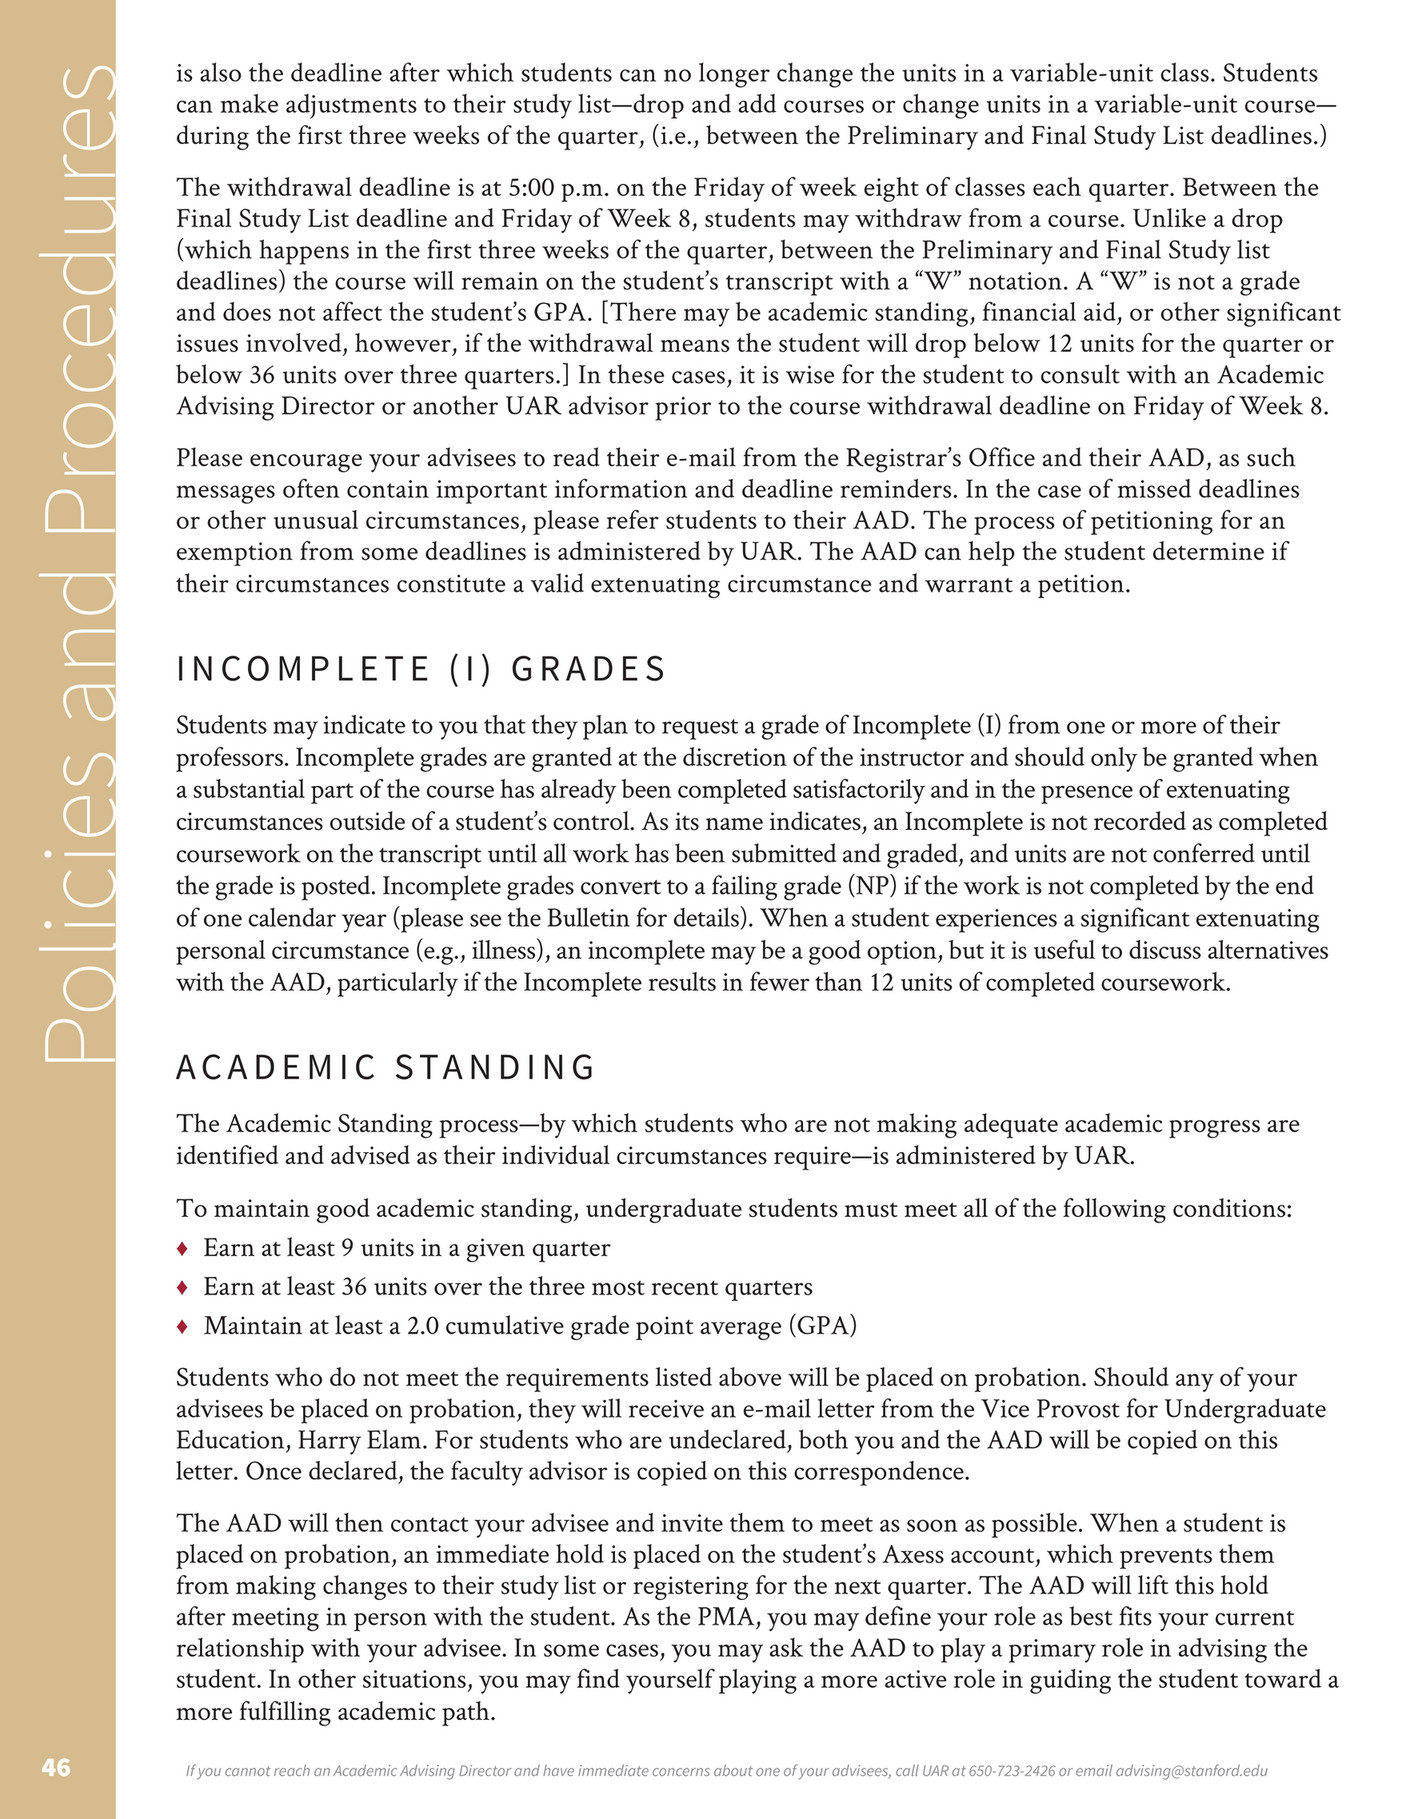 stanford university vpue pma handbook r page  stanford students encounter failure if they earn a failing grade on an exam or in a class or if they are placed on academic probation